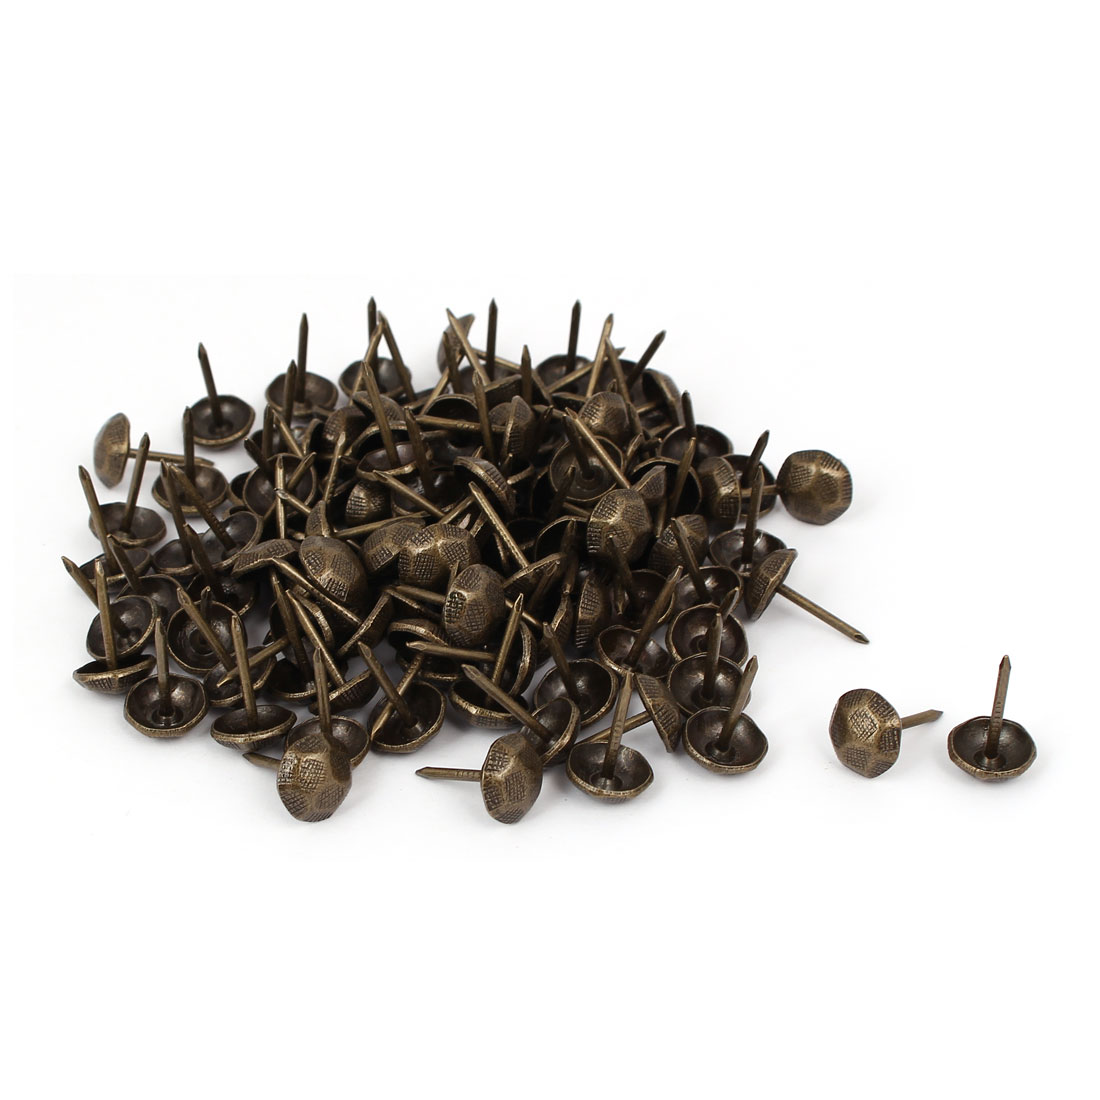 "Home Furniture Metal Round Upholstery Tack Nail Bronze Tone 7/16"" Dia 120pcs"